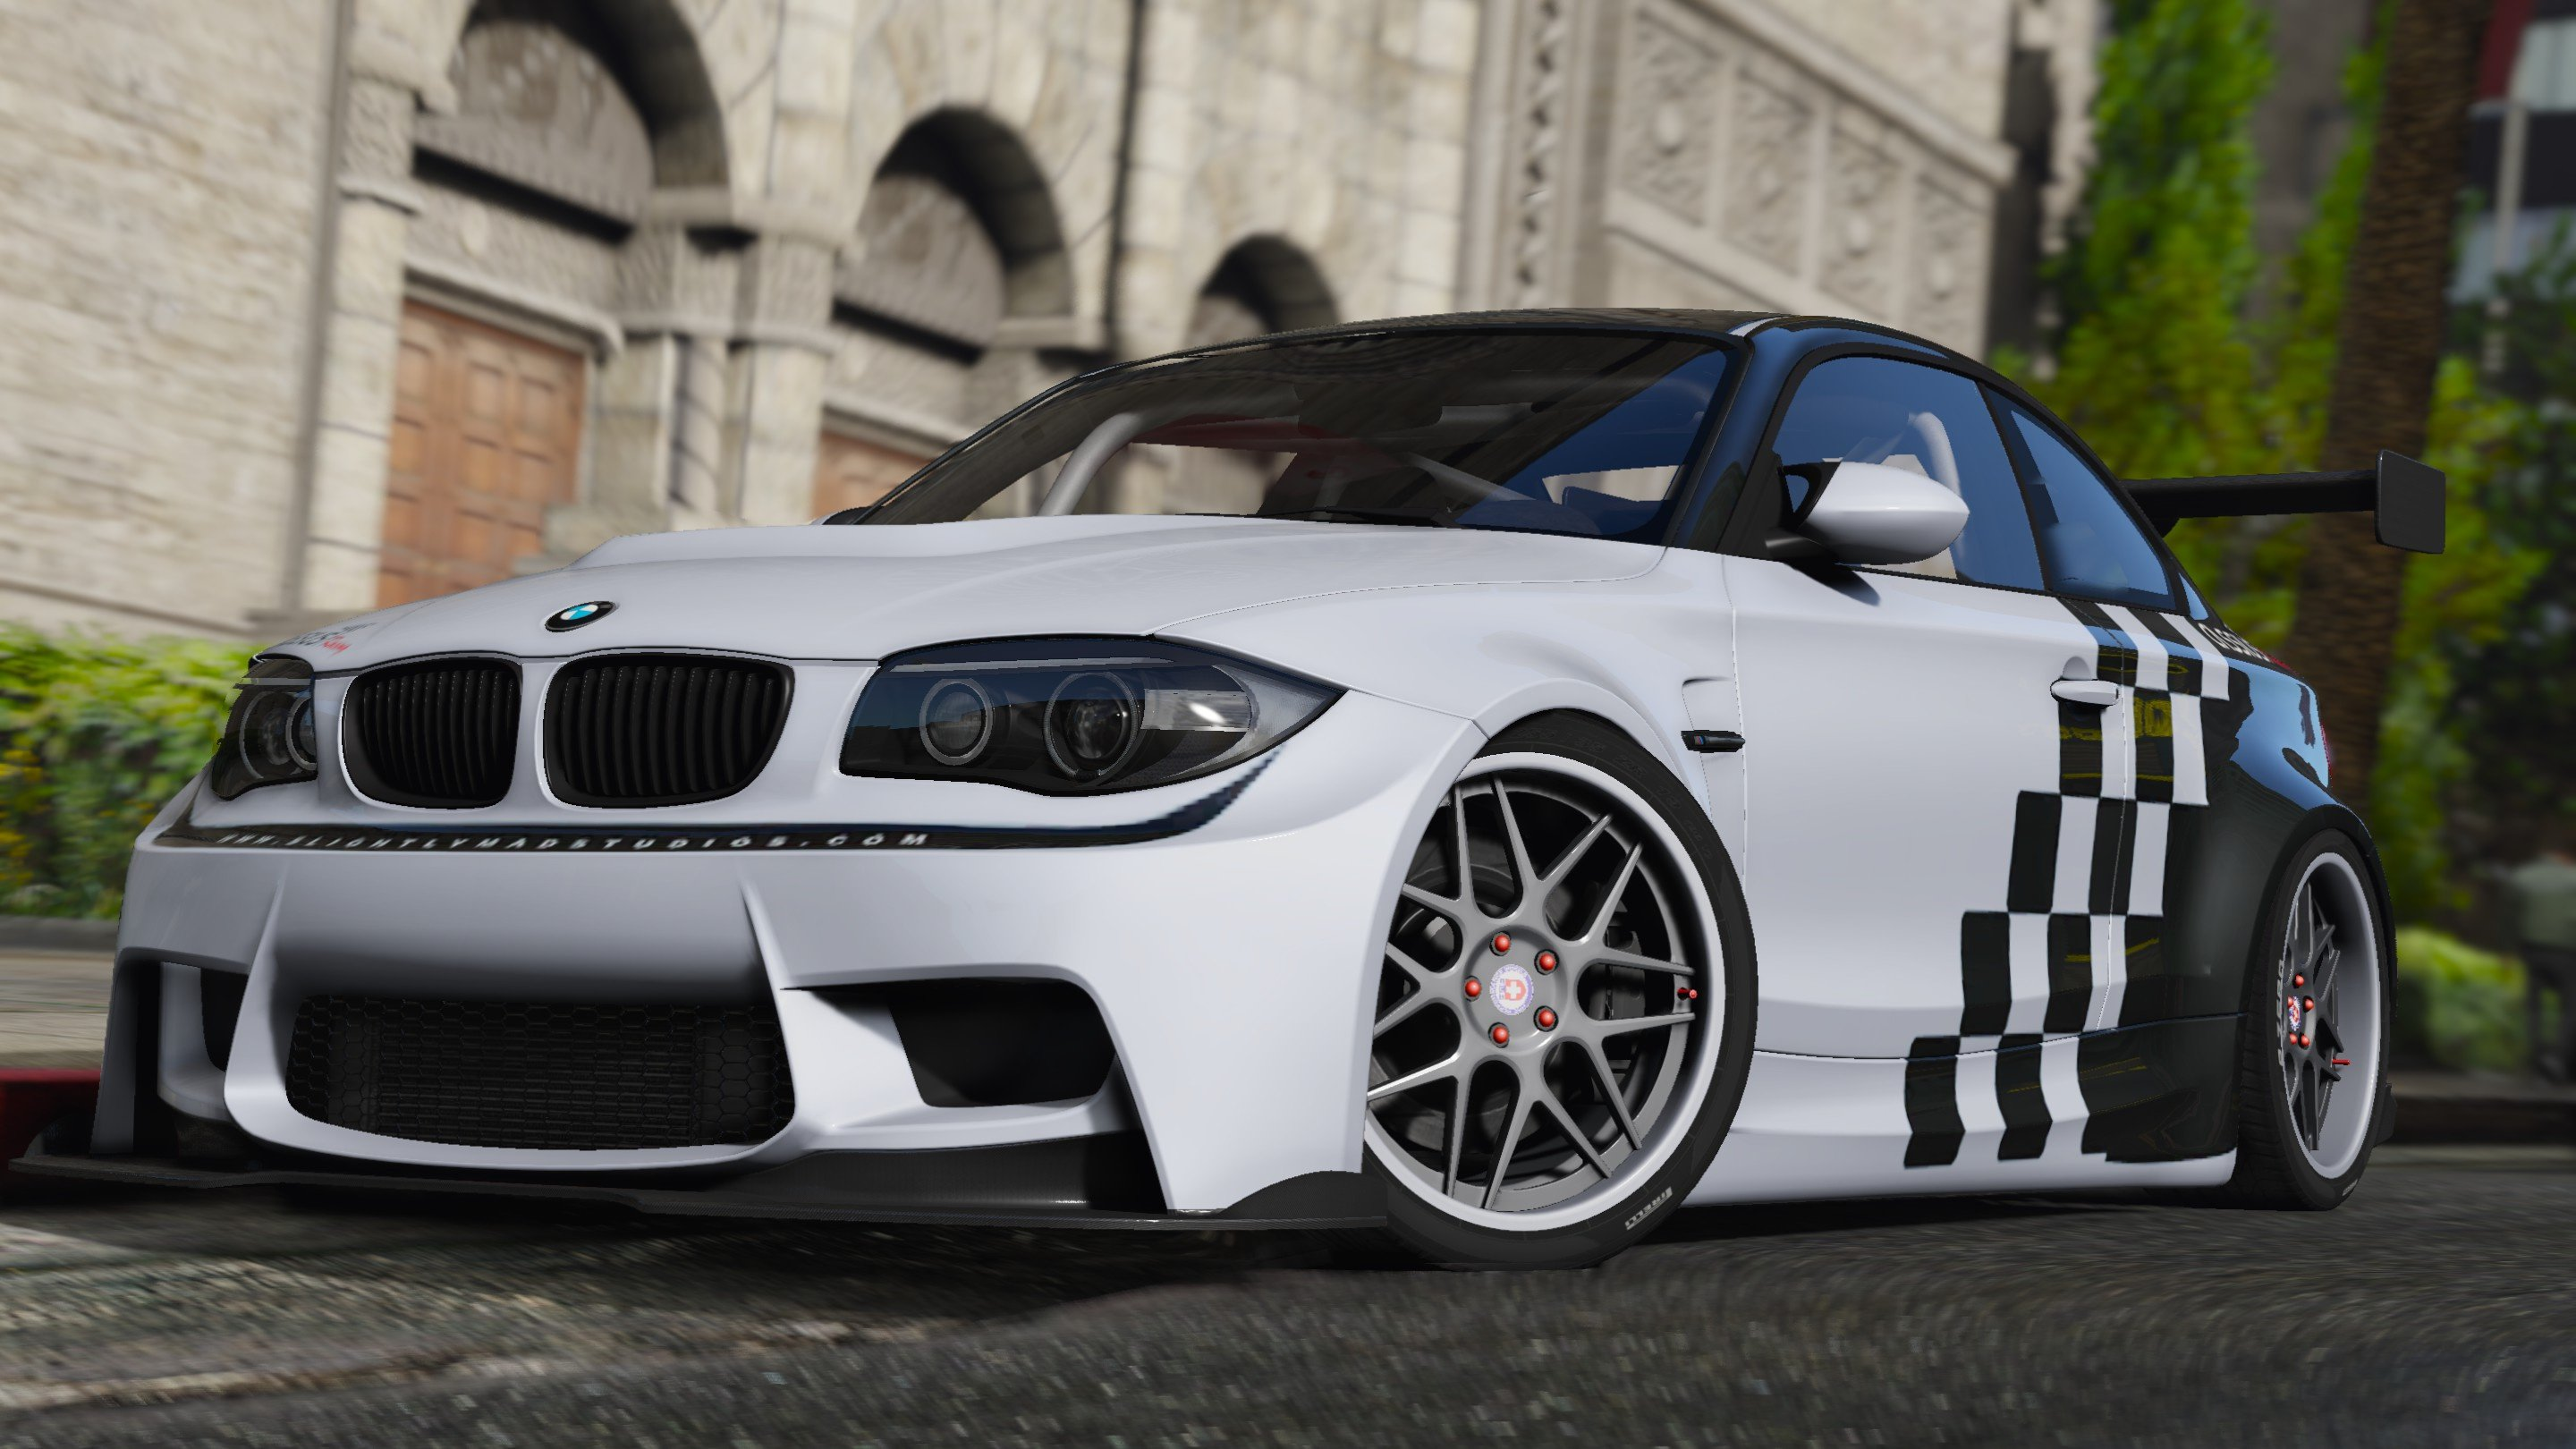 BMW 1M - Stance Editon v1.3 for GTA 5